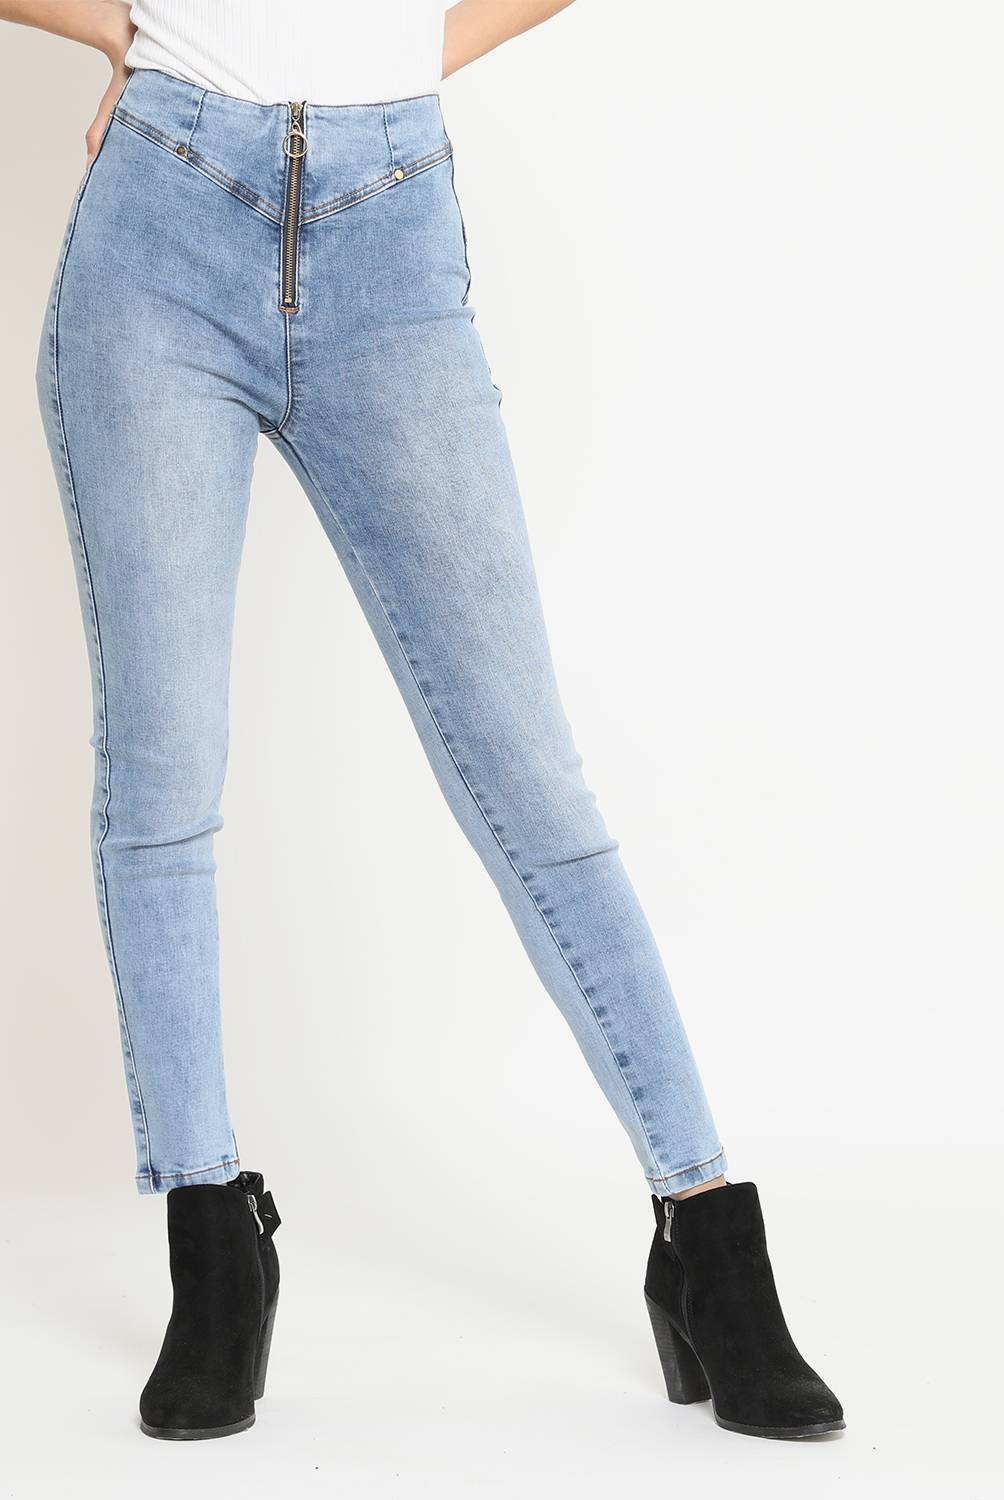 MOSSIMO - Jean Push Up Mujer